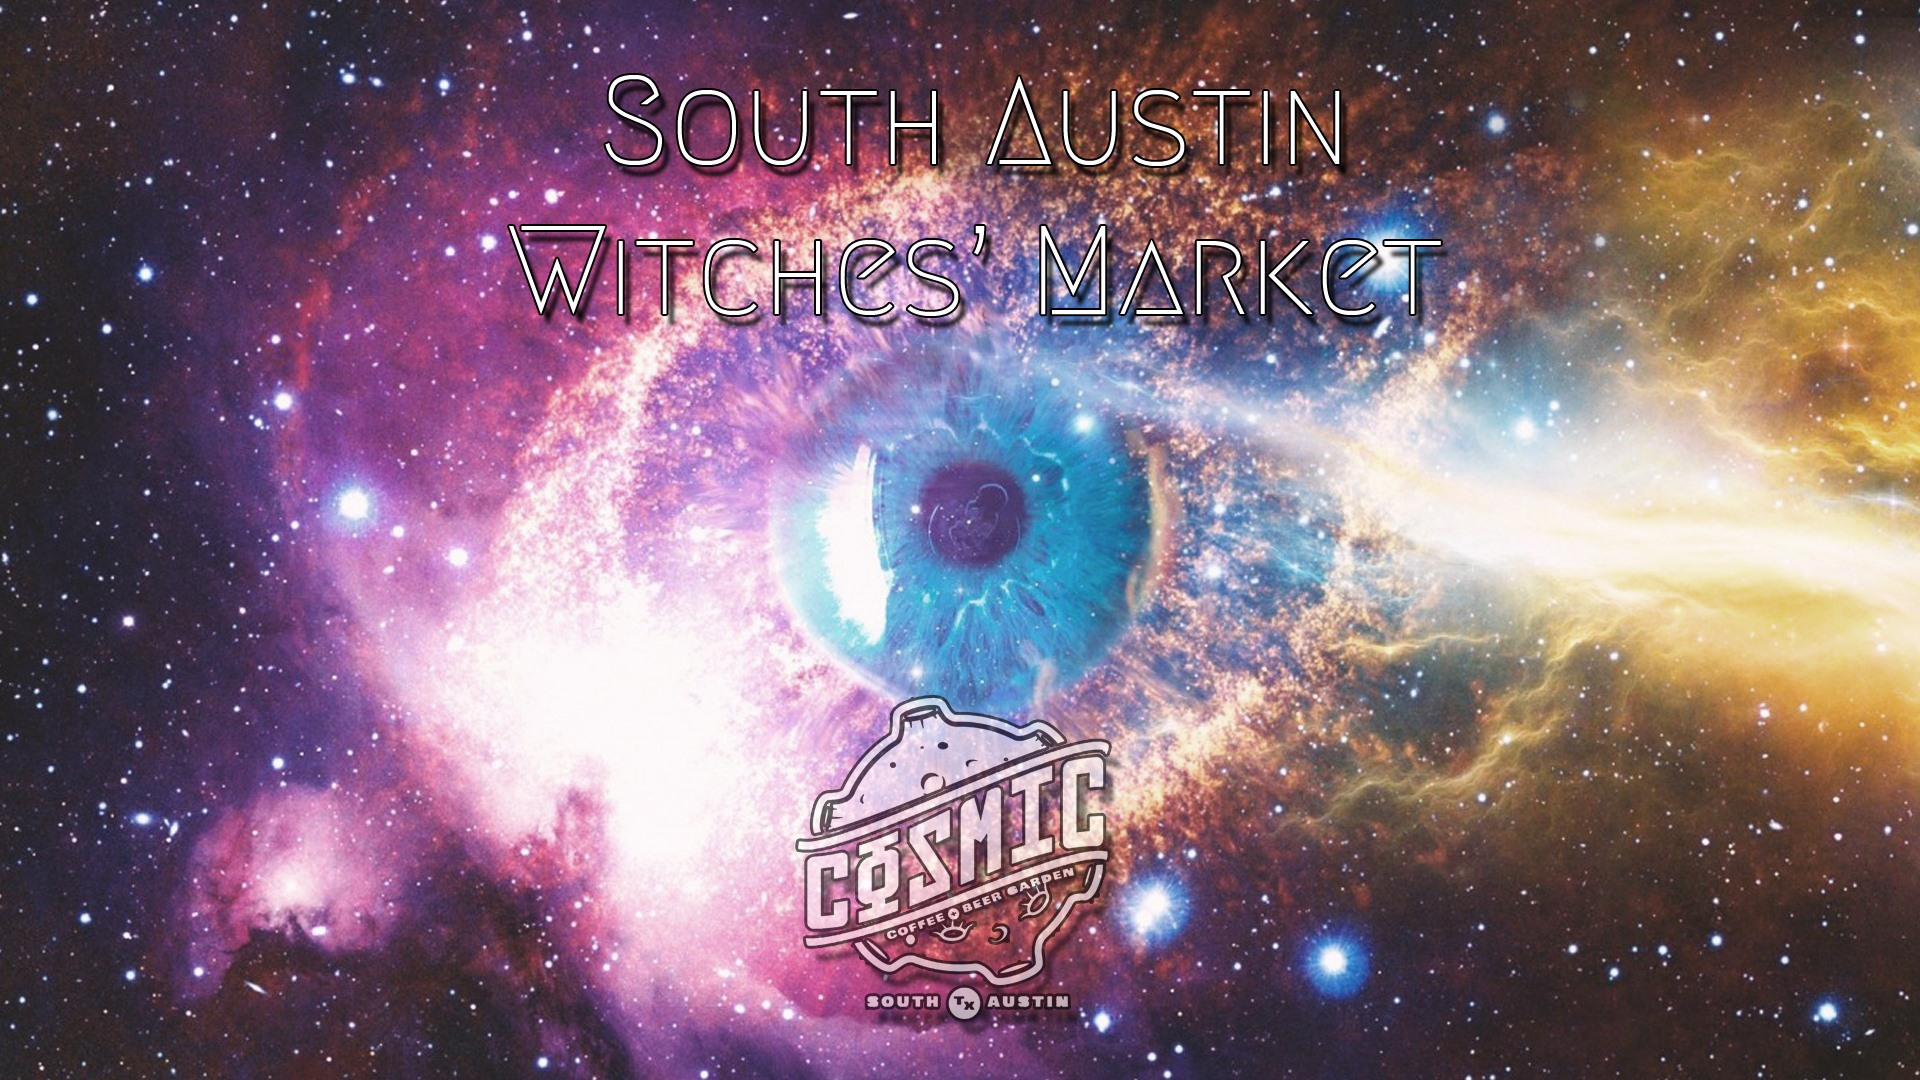 South Austin Witches' Market